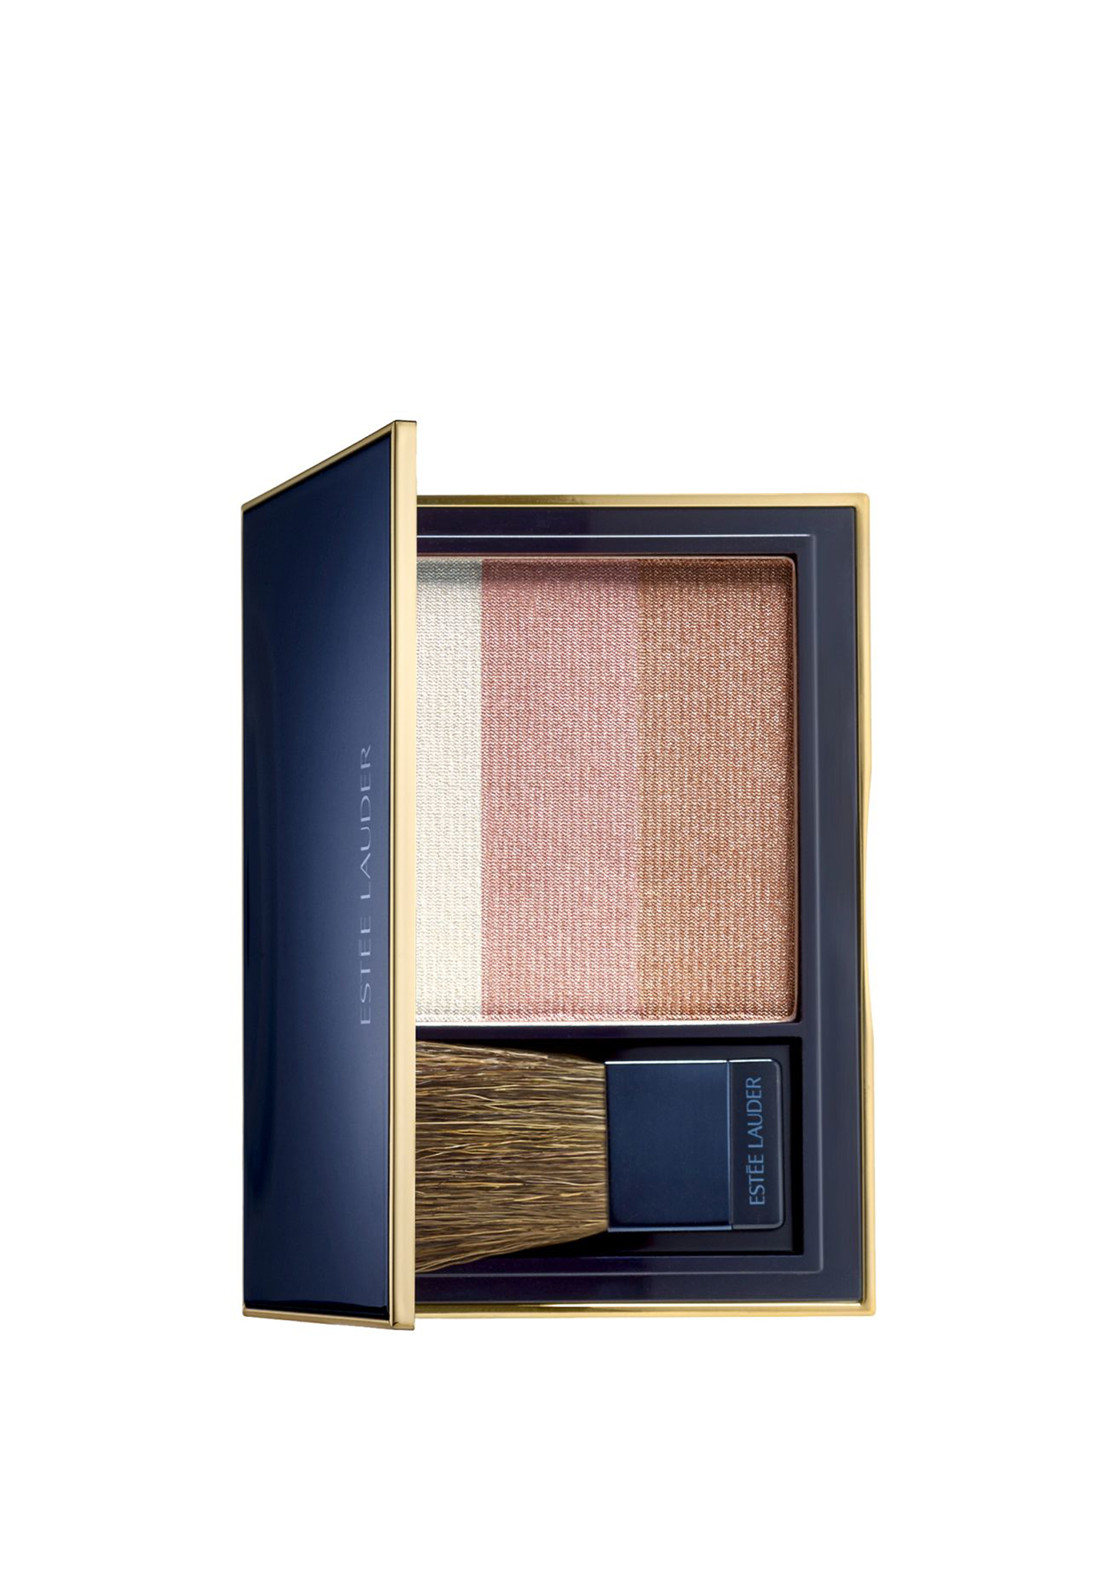 Estee Lauder Pure Colour Envy Shimmering BlushLights, Sultry Glow